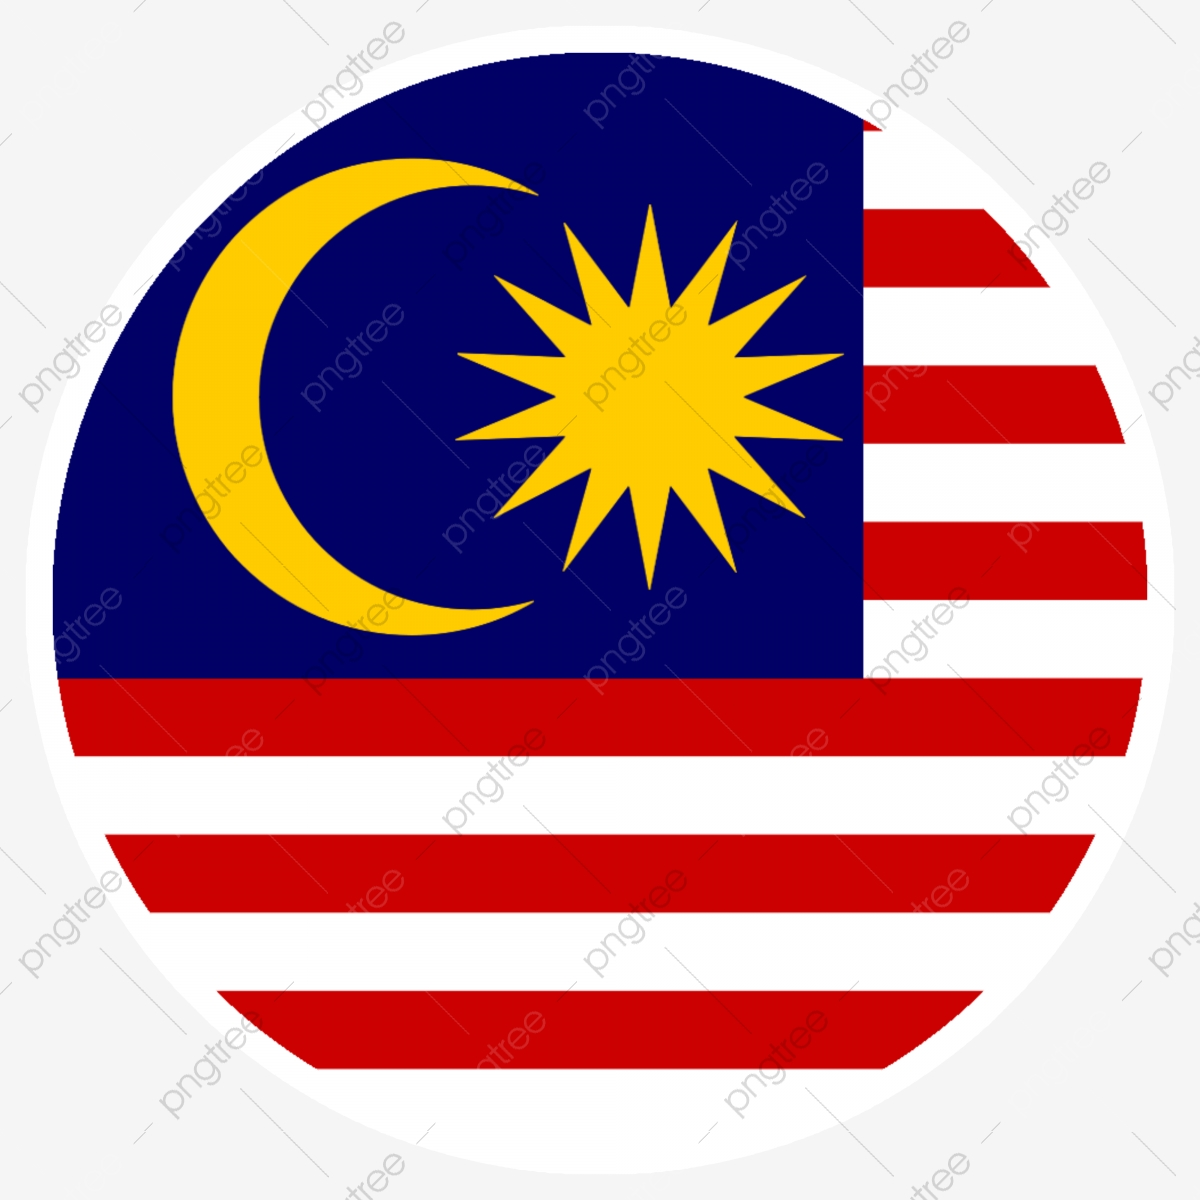 malaysia flag button badge malaysia flag circle png transparent clipart image and psd file for free download https pngtree com freepng malaysia flag button badge 4946416 html